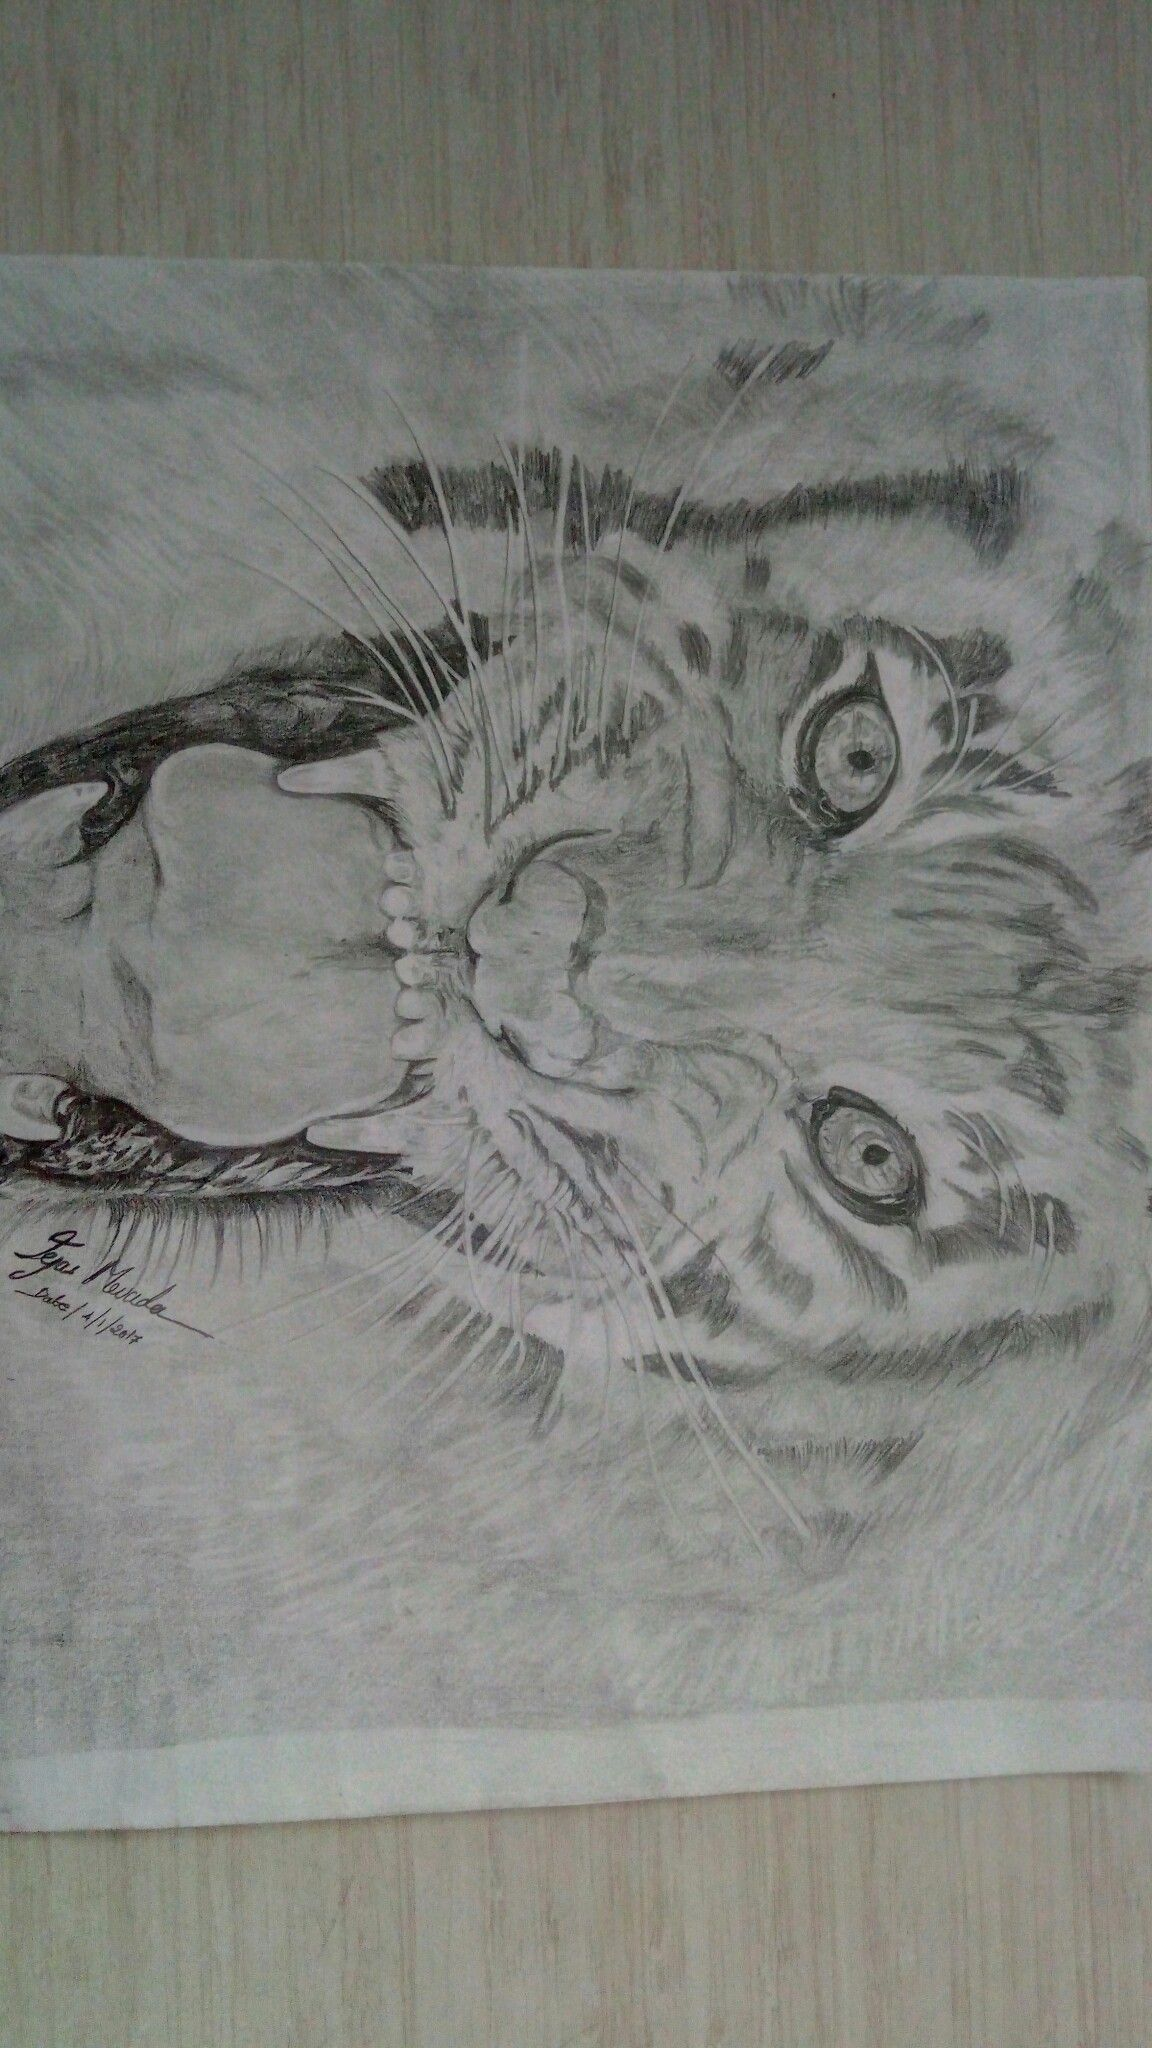 Drawings of lions in pencil dating